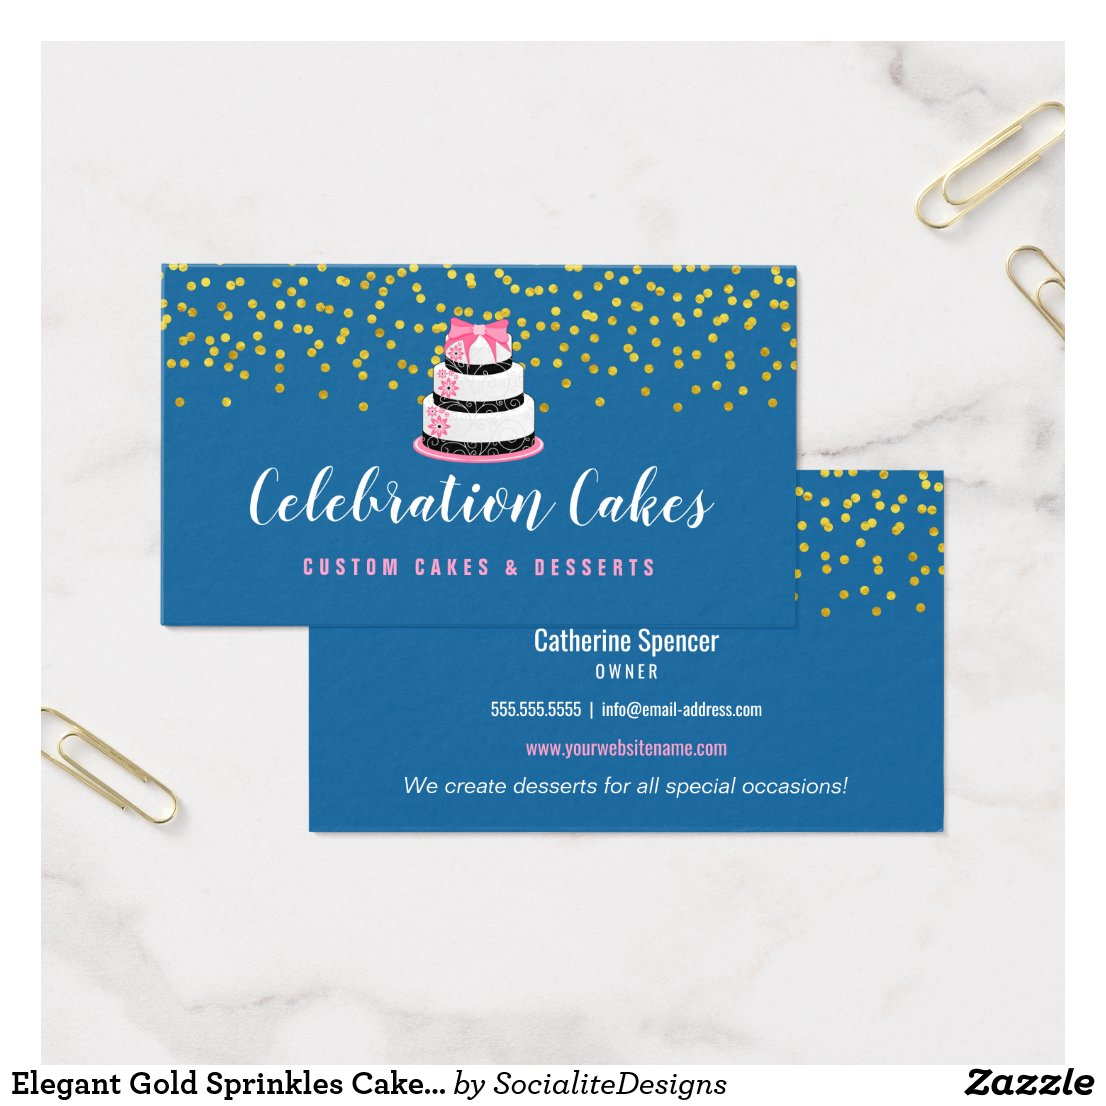 Elegant Gold Sprinkles Cake Bakery Business Card